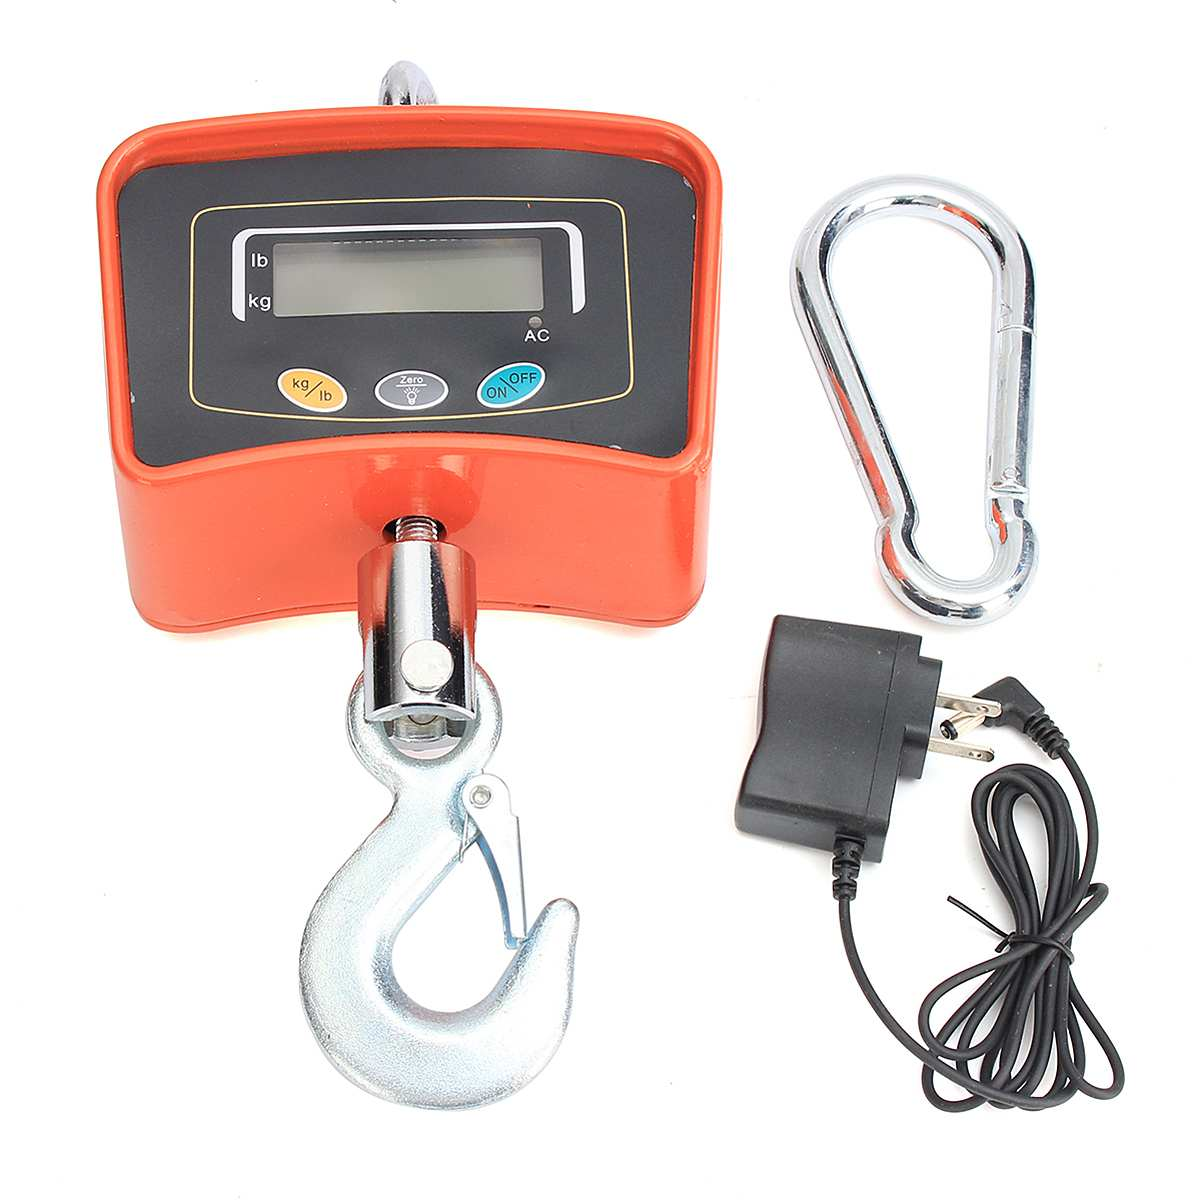 500KG/1100 LBS Digital Crane Scale 110V/220V Heavy Industrial Hanging Scale Electronic Weighing Balance Tools - 6